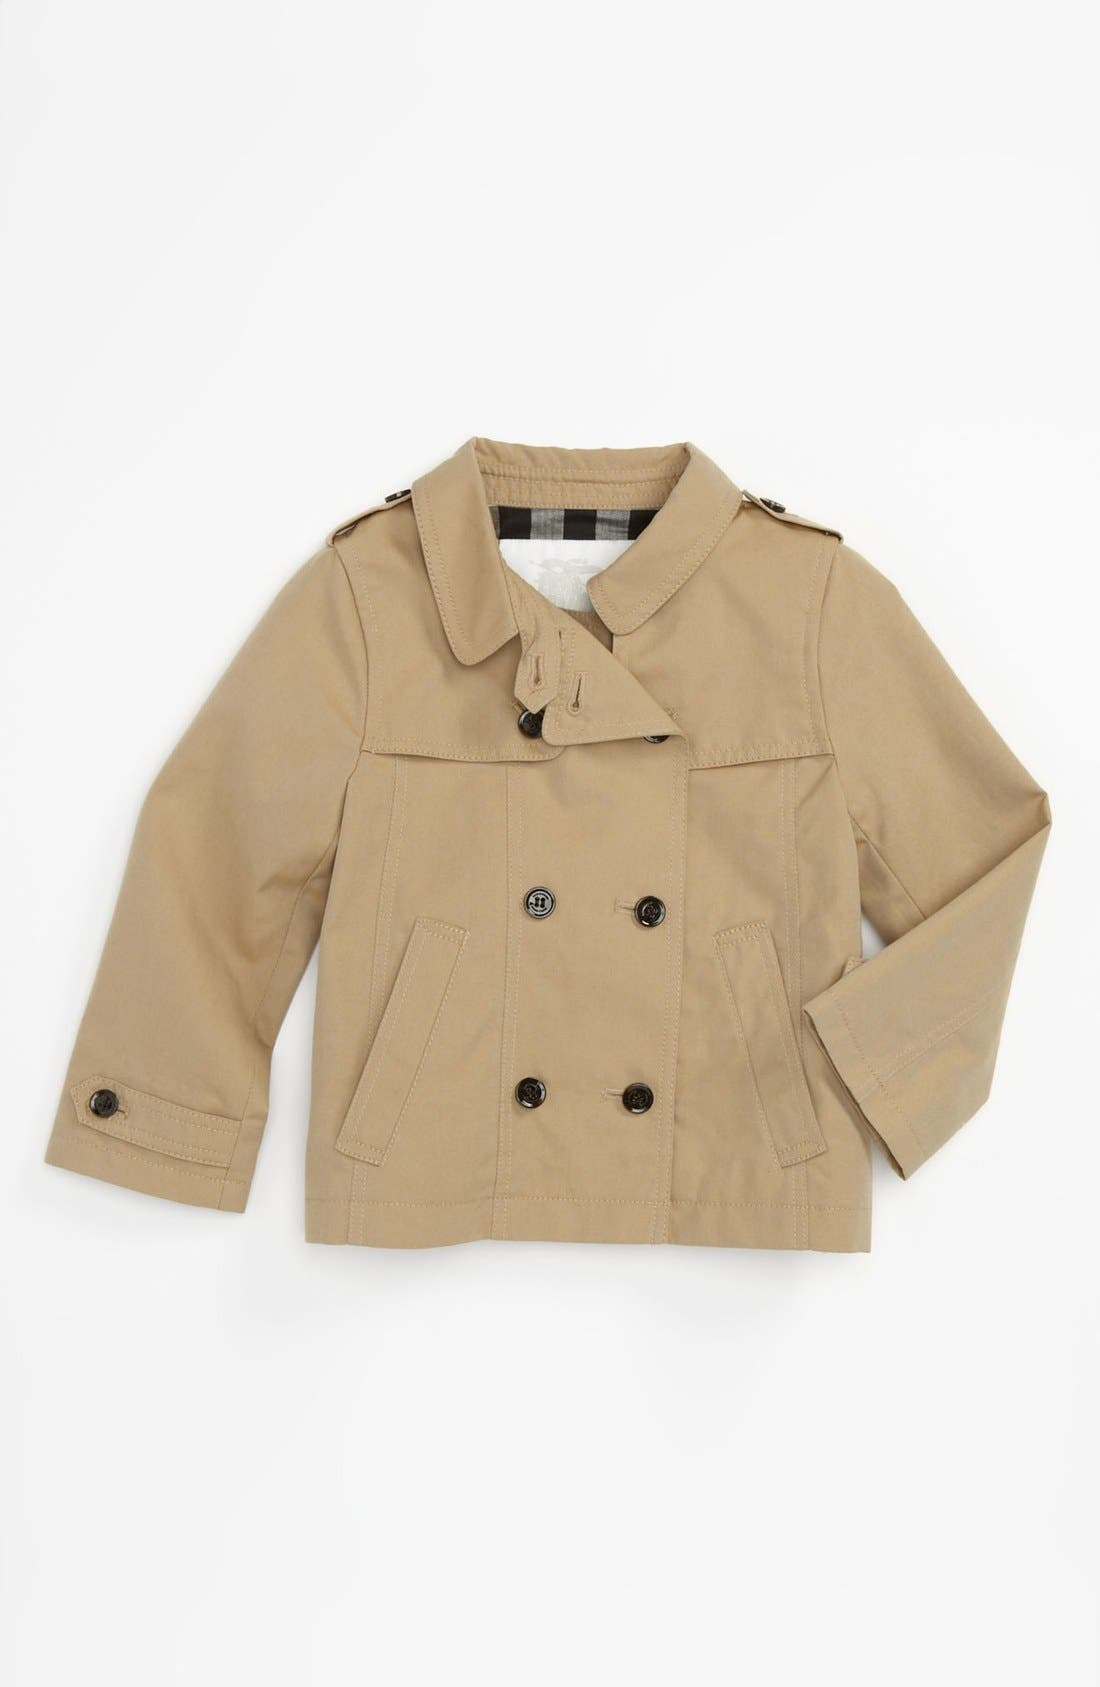 Main Image - Burberry Double Breasted Trench Coat (Toddler)